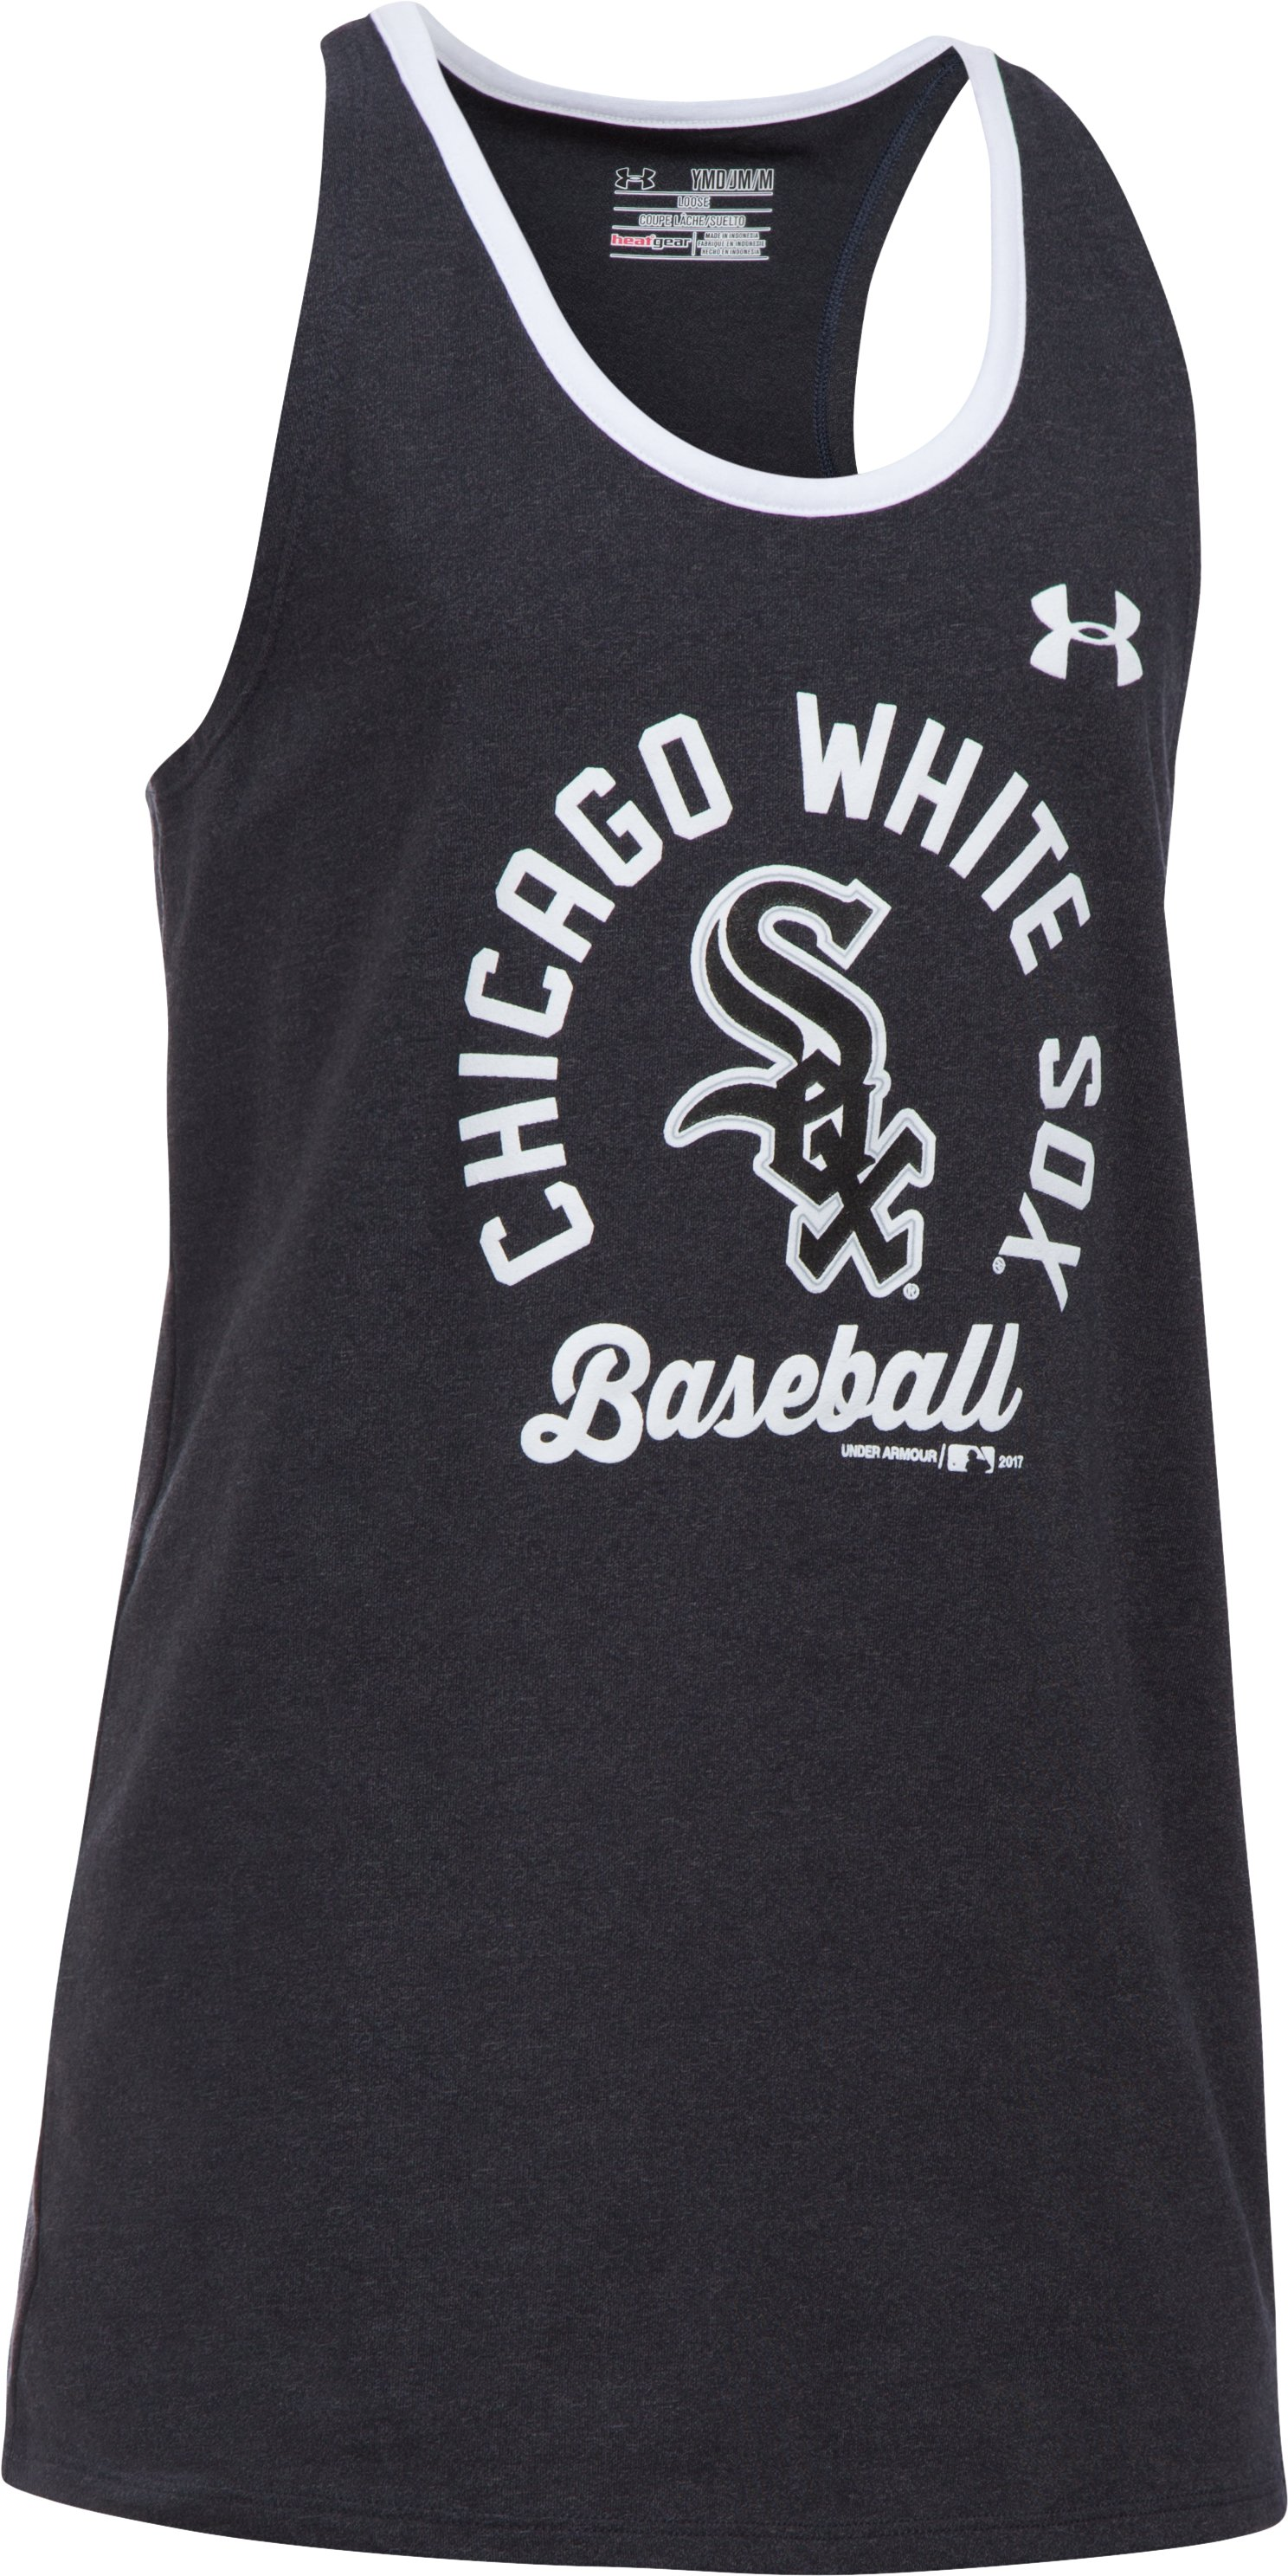 Girls' Chicago White Sox Ringer Tank, Black